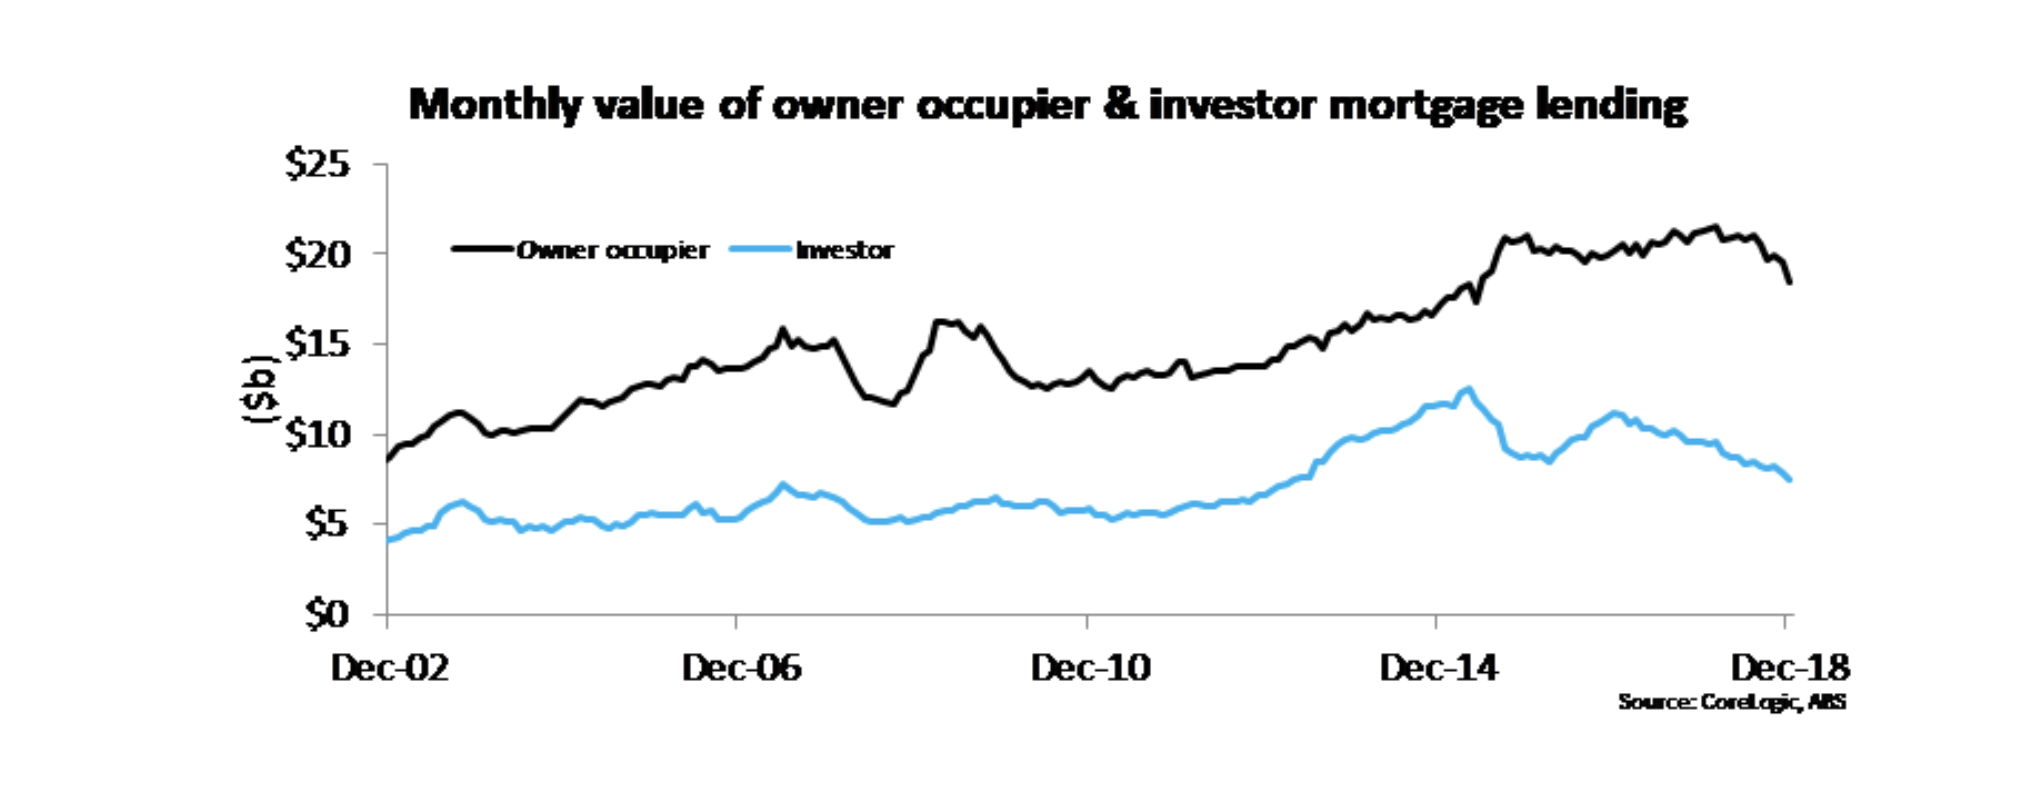 While investor mortgage lending has been weakening for some time, over recent months Kusher says there has been a rapid slowdown in lending to owner-occupiers.